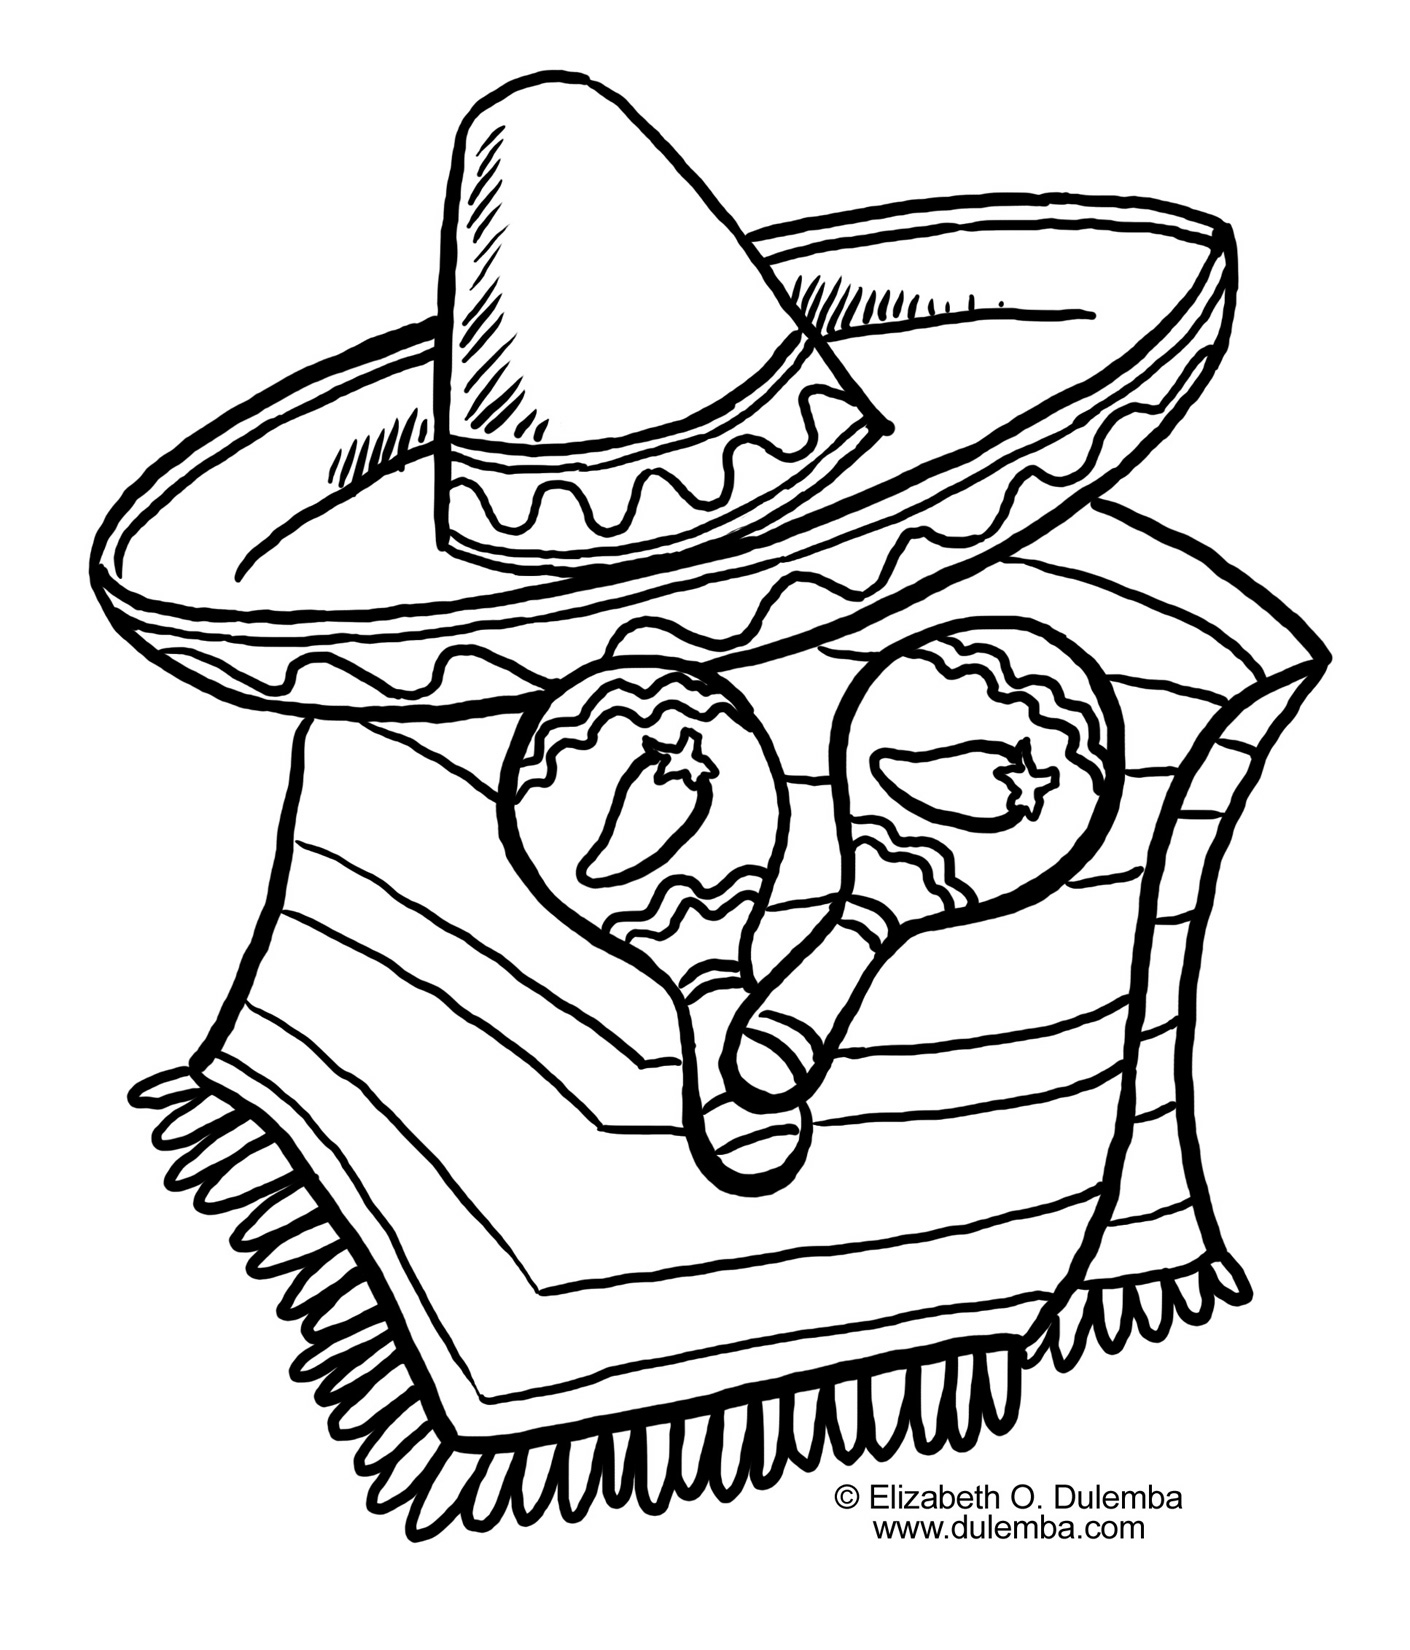 1410x1650 Now Mexican Food Coloring Pages New Free Download